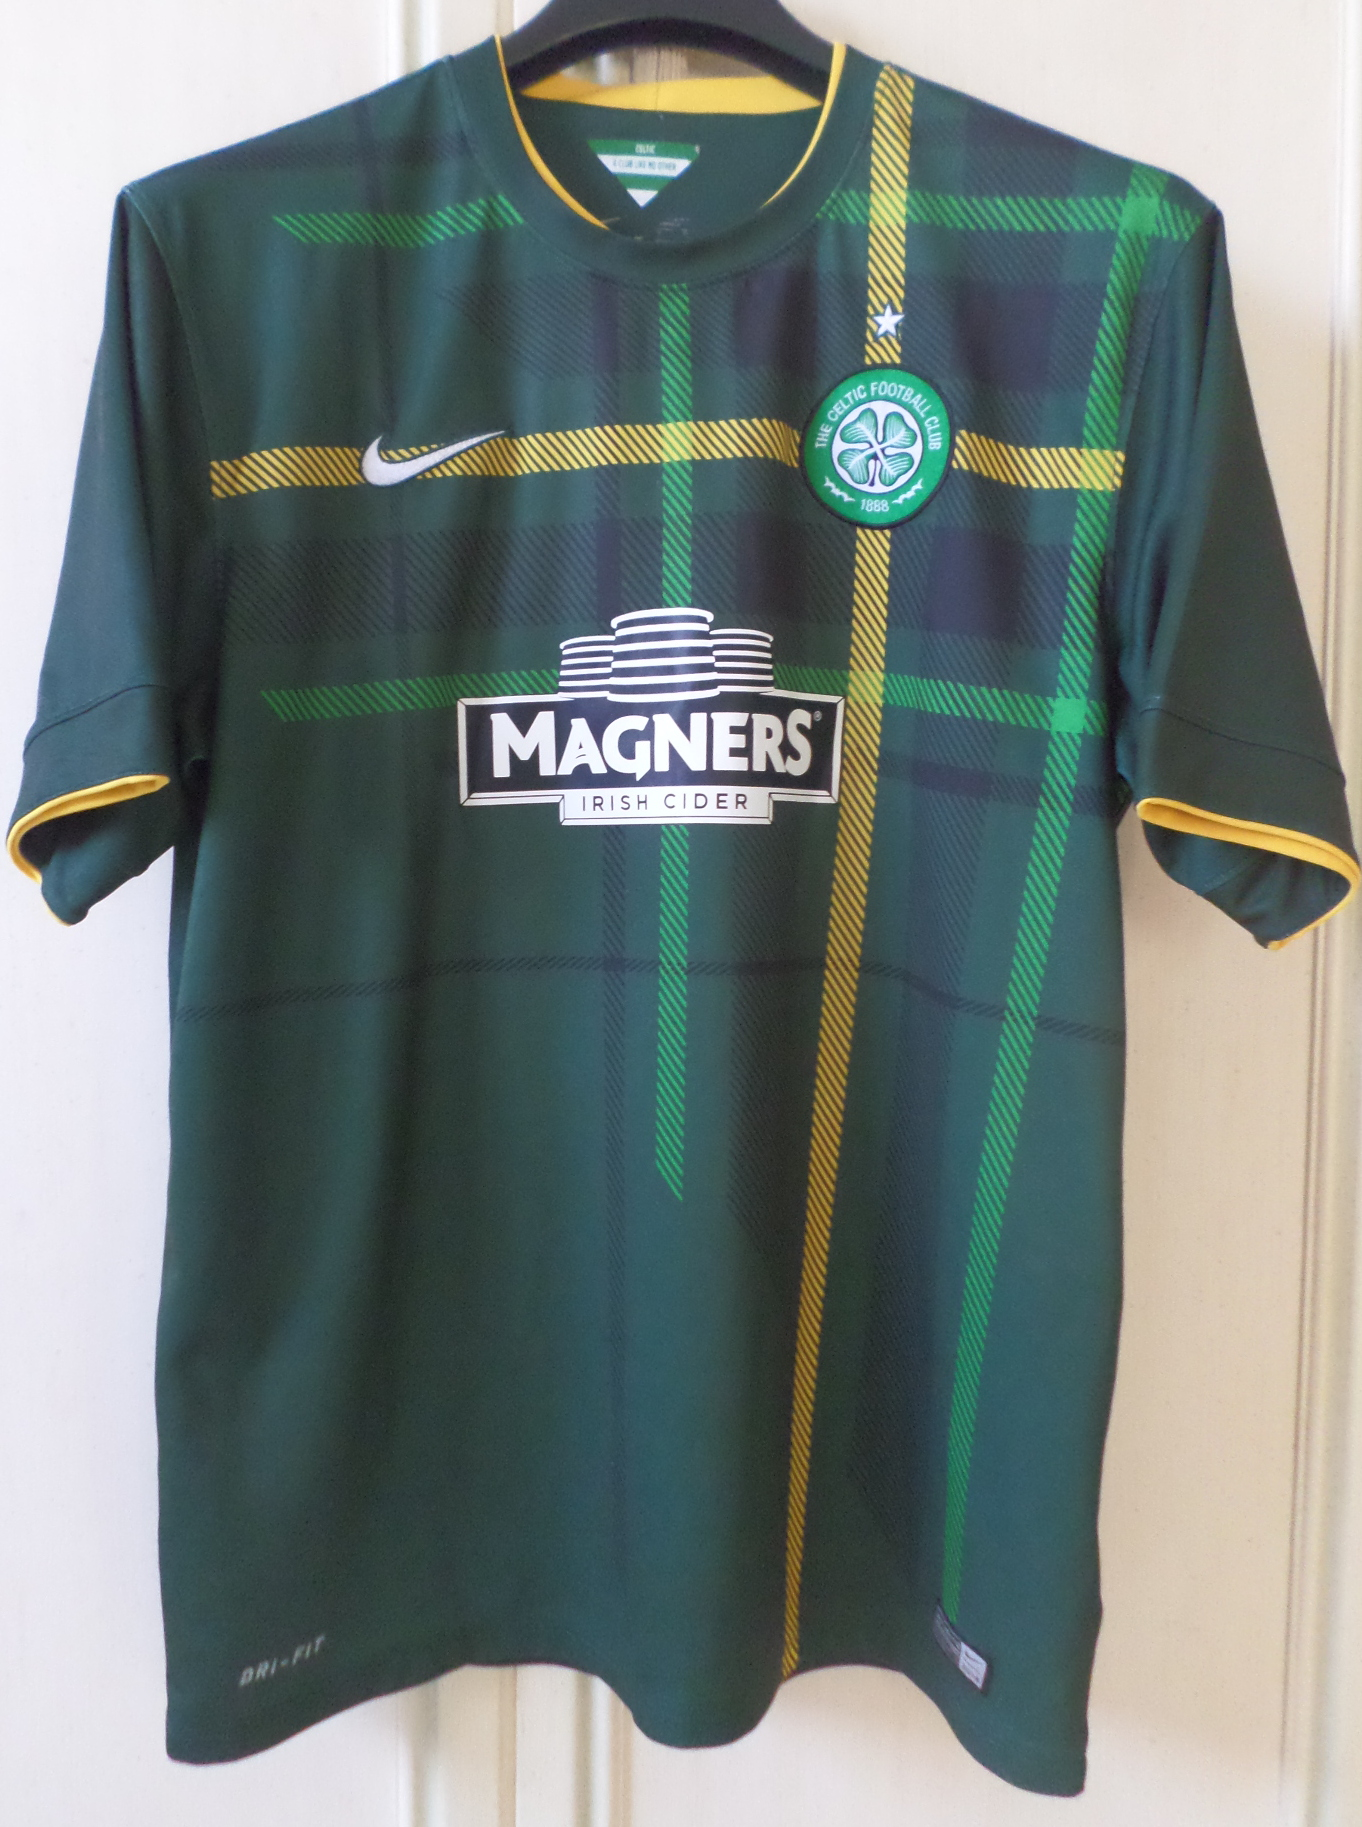 CELTIC MAGNERS AWAY - XL